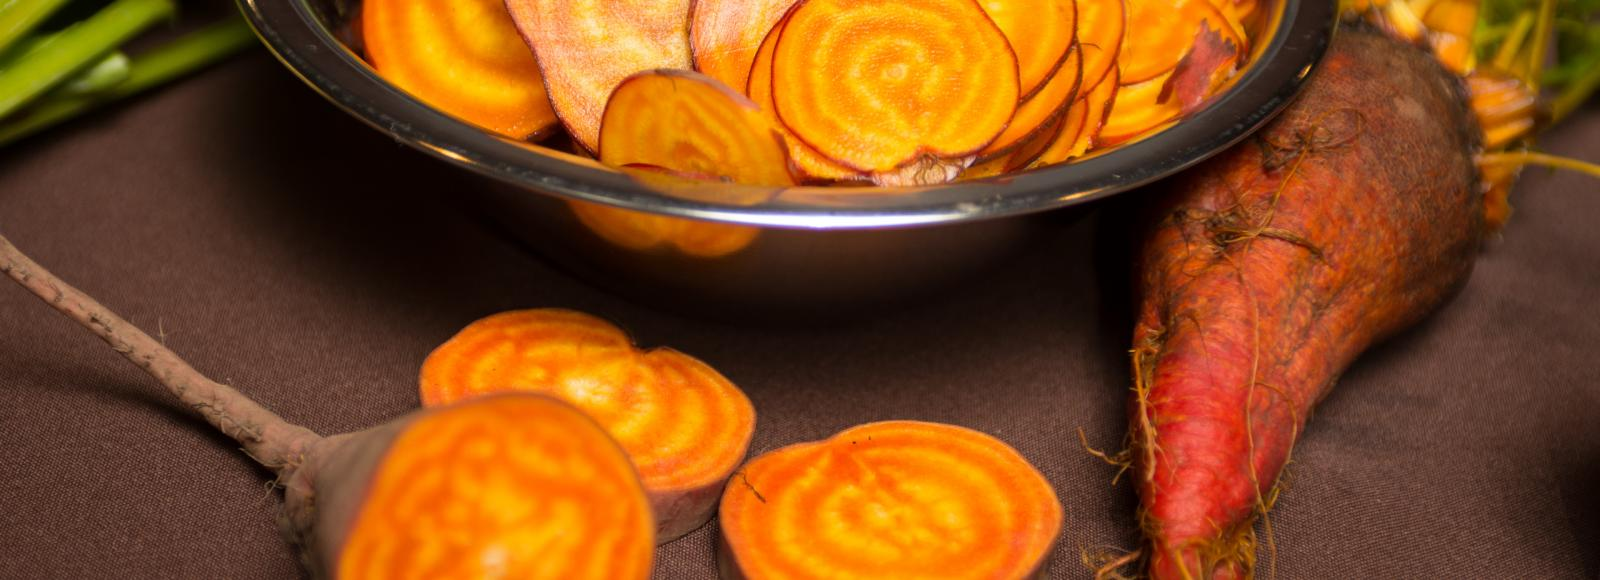 Beets bred for flavor, sliced into rounds showing their striated centers.